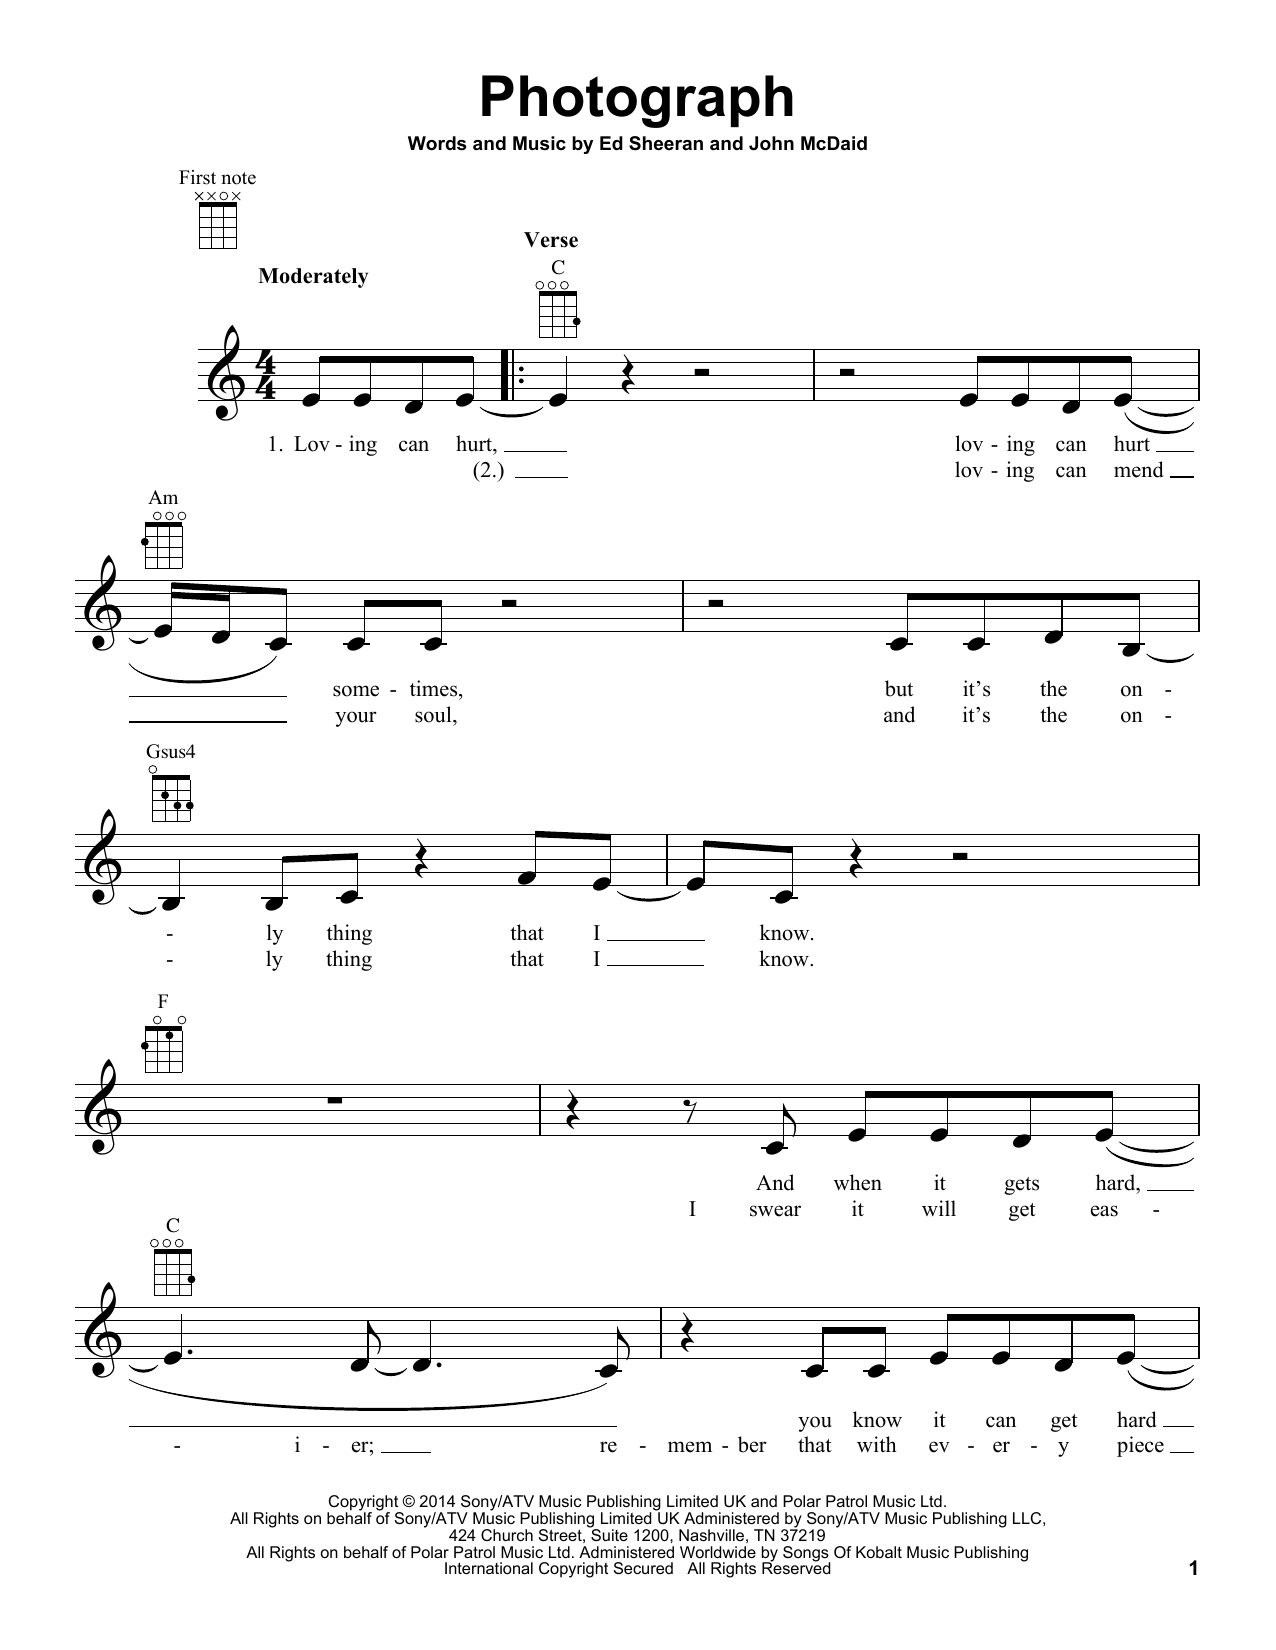 Photograph Sheet Music